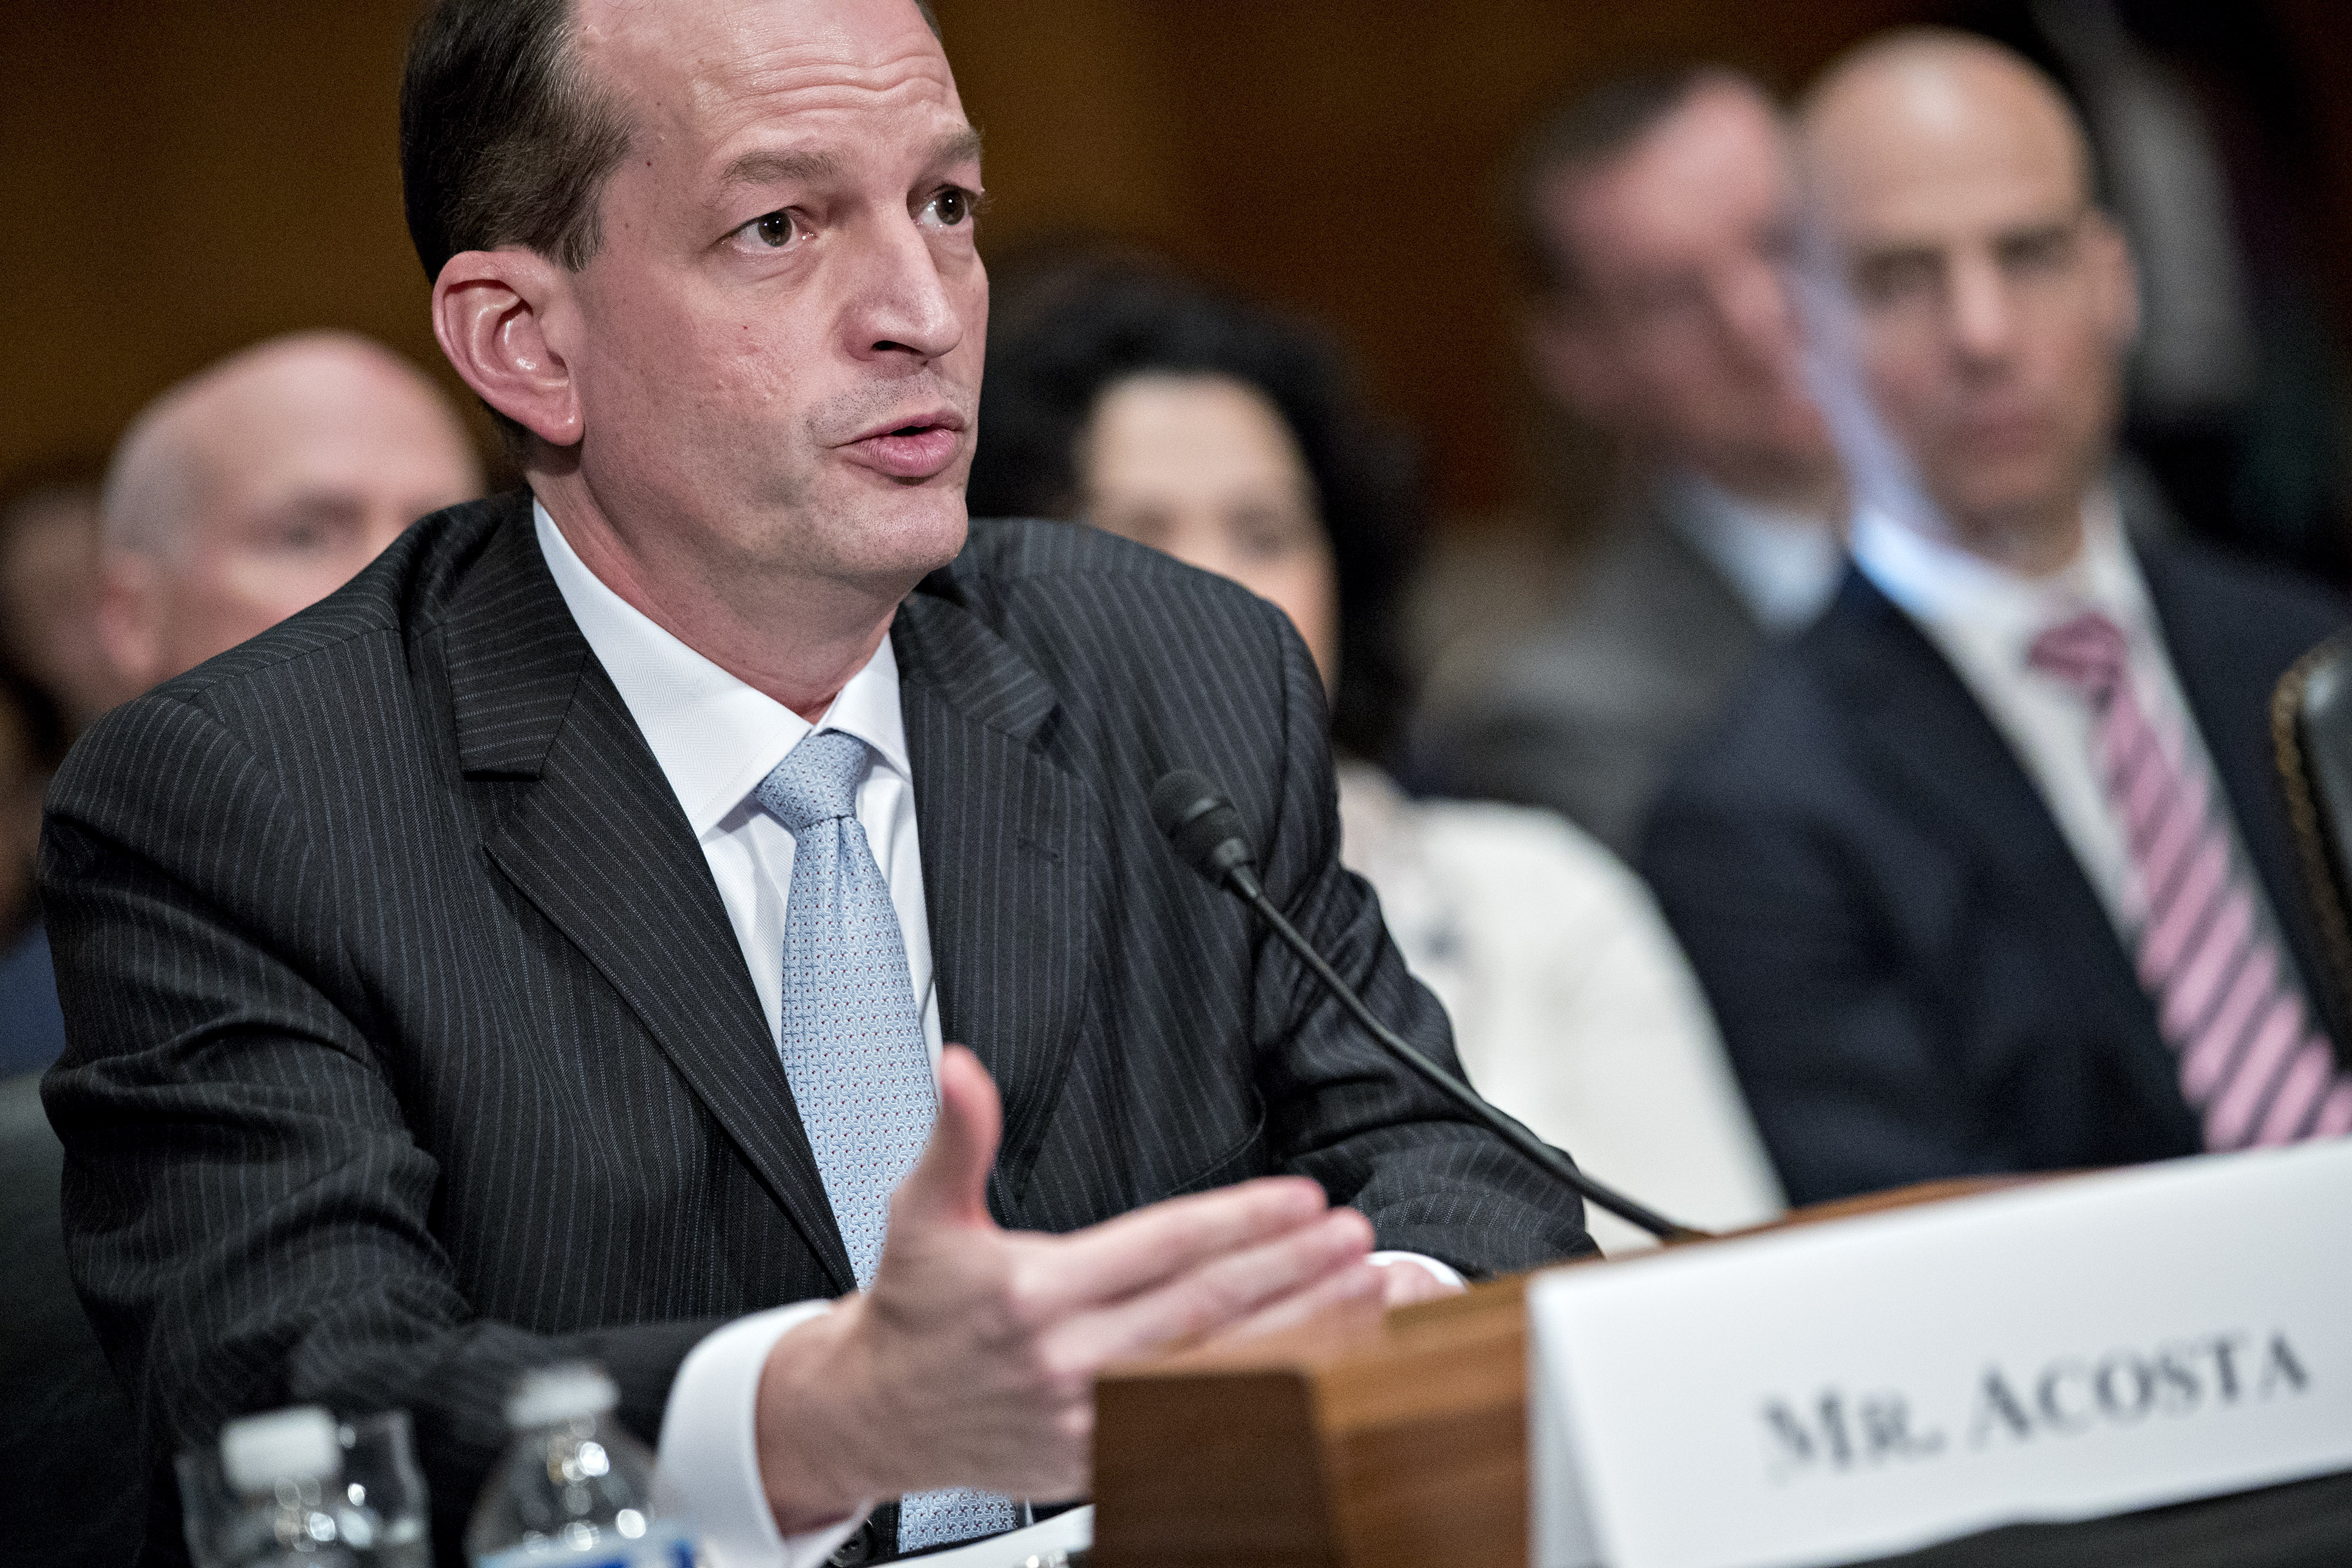 Senate Confirmation Hearing For R. Alexander Acosta To Lead Labor Department